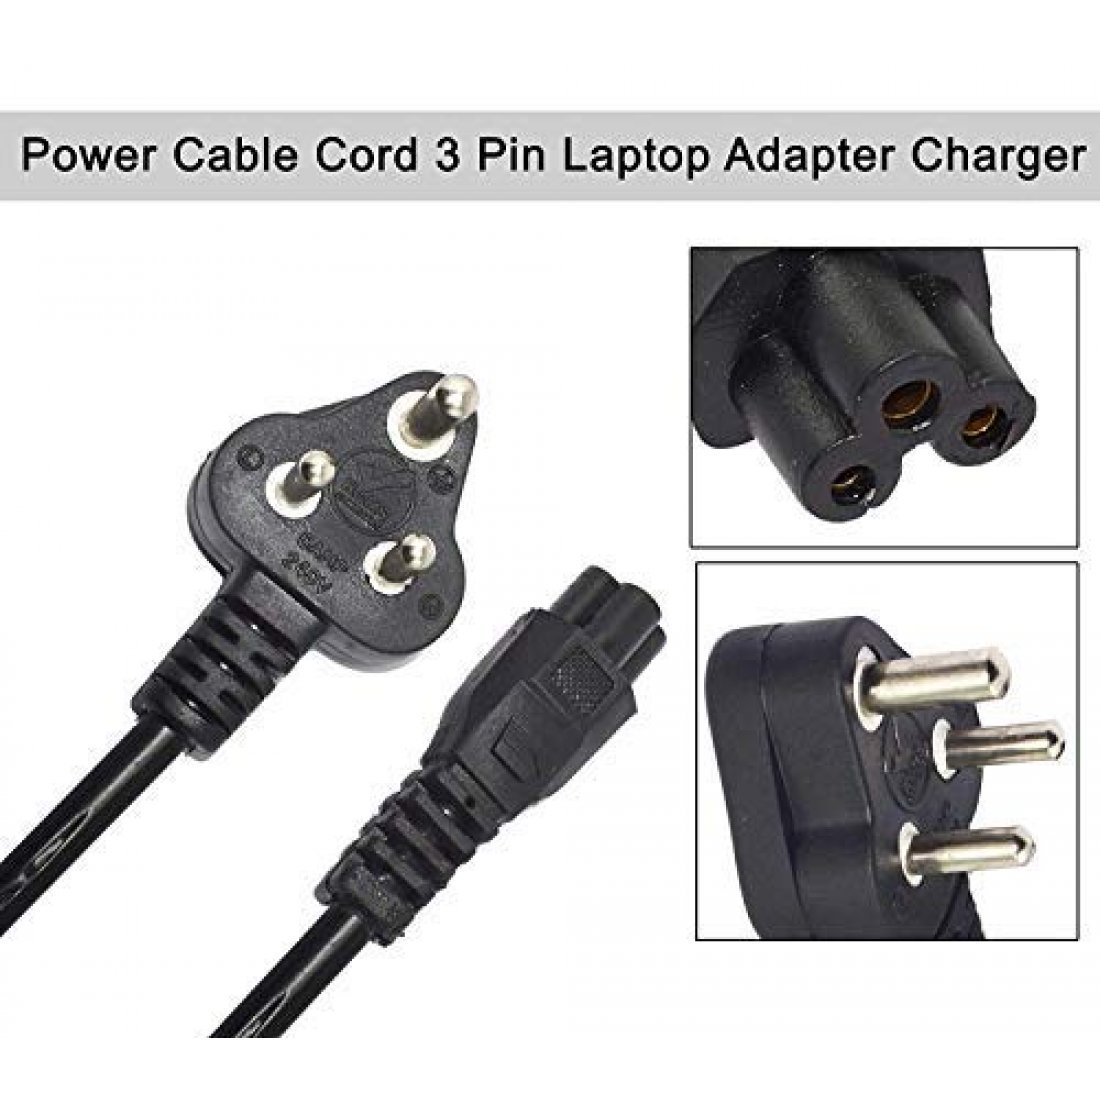 3 PIN LAPTOP POWER CORD CABLE FOR CHARGING ADAPTER POWER SUPPLY OF DELL HP SAMSUNG ACER ASUS & ALL OTHER BRAND LAPTOP